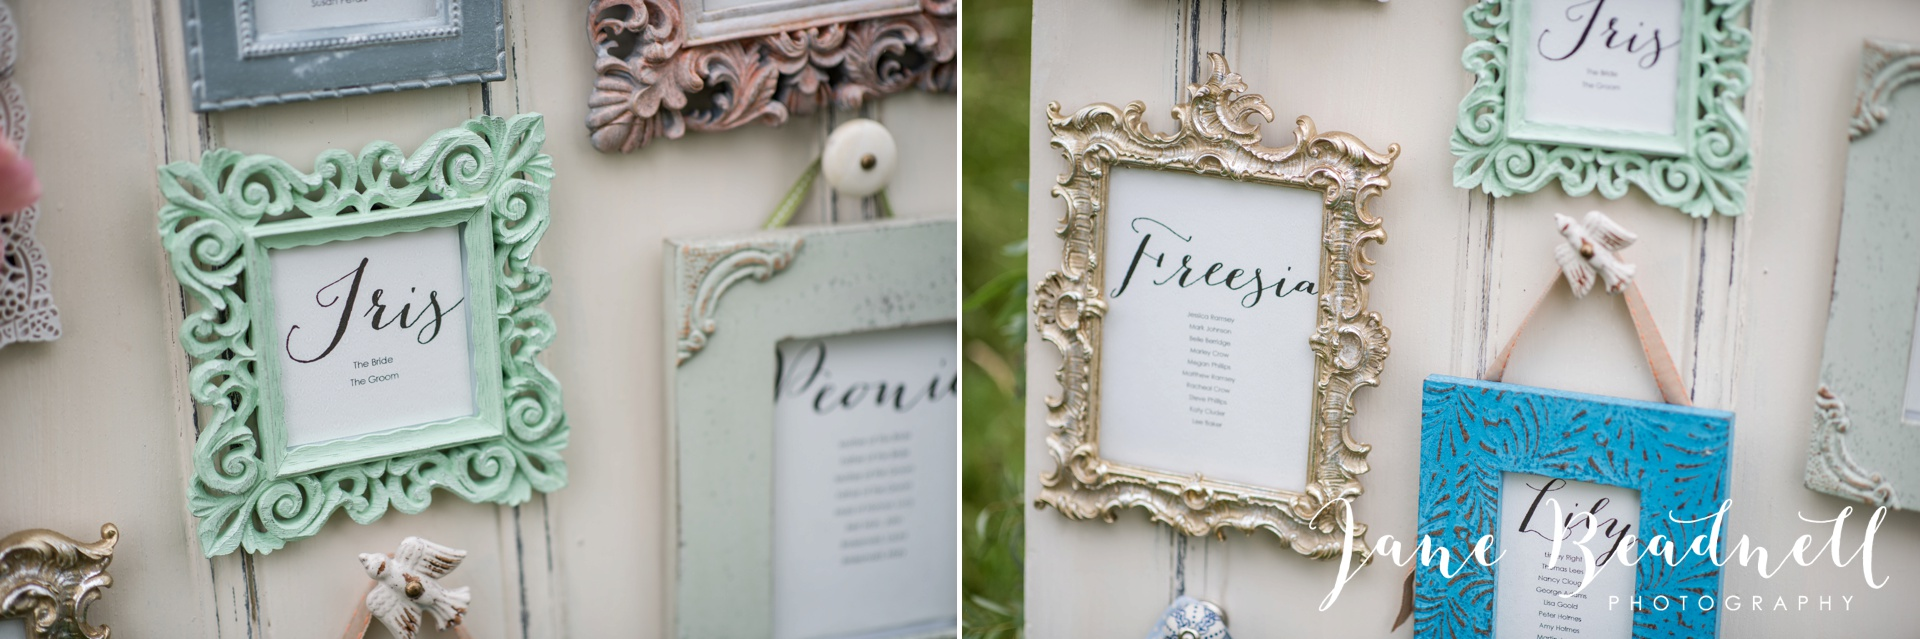 Jane Beadnell fine art wedding photographer Leeds_0022